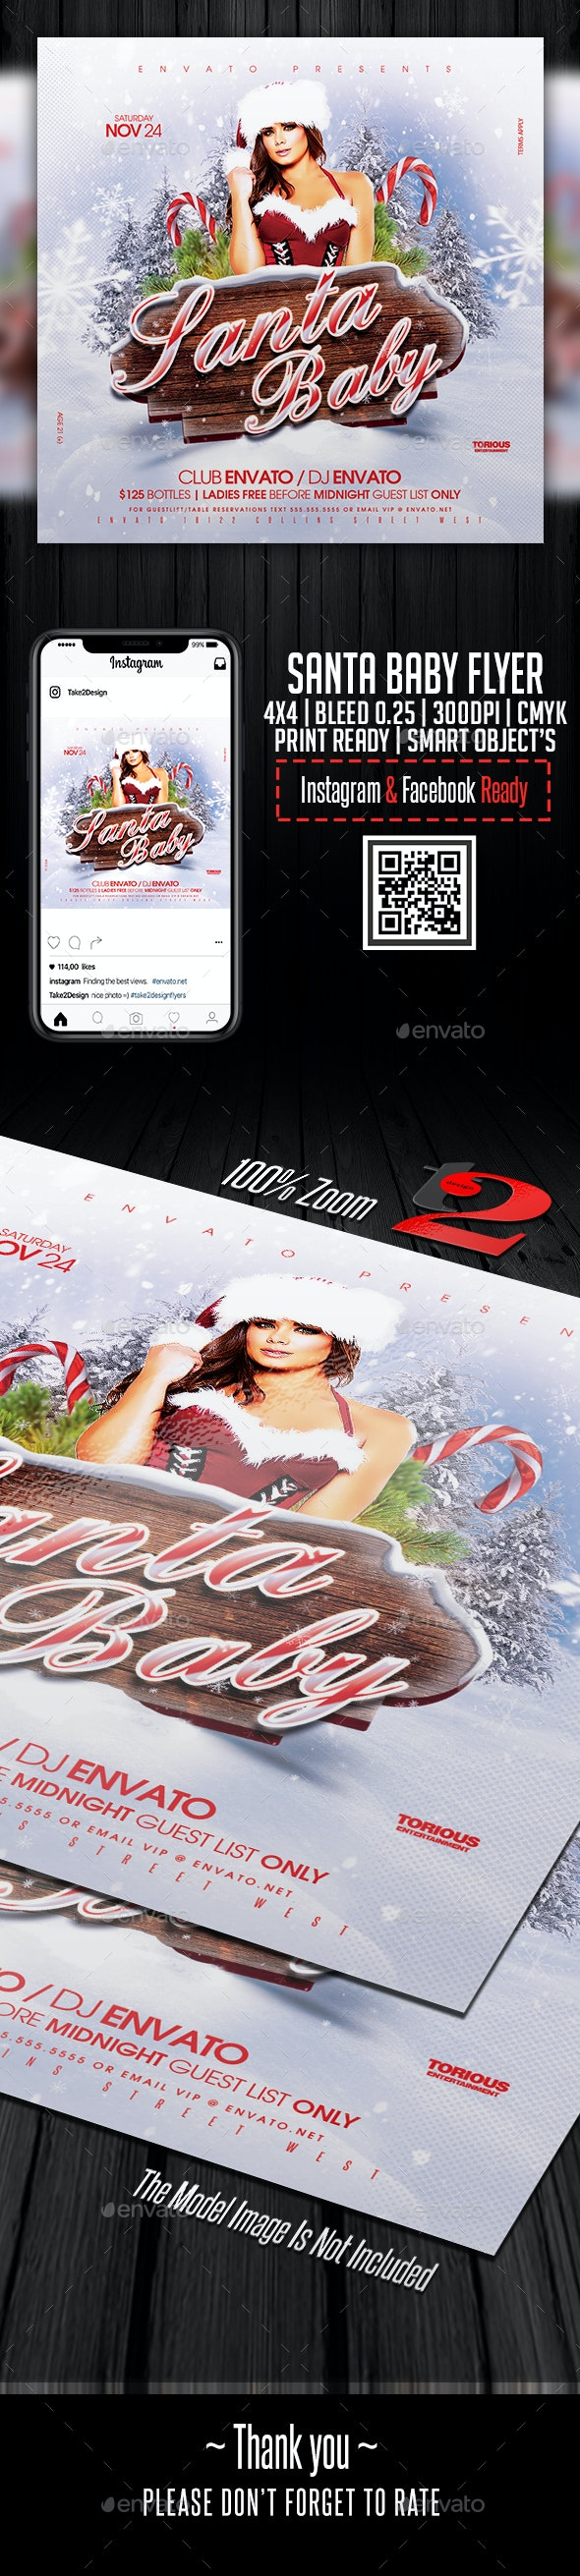 Santa Baby Flyer Template - Clubs & Parties Events